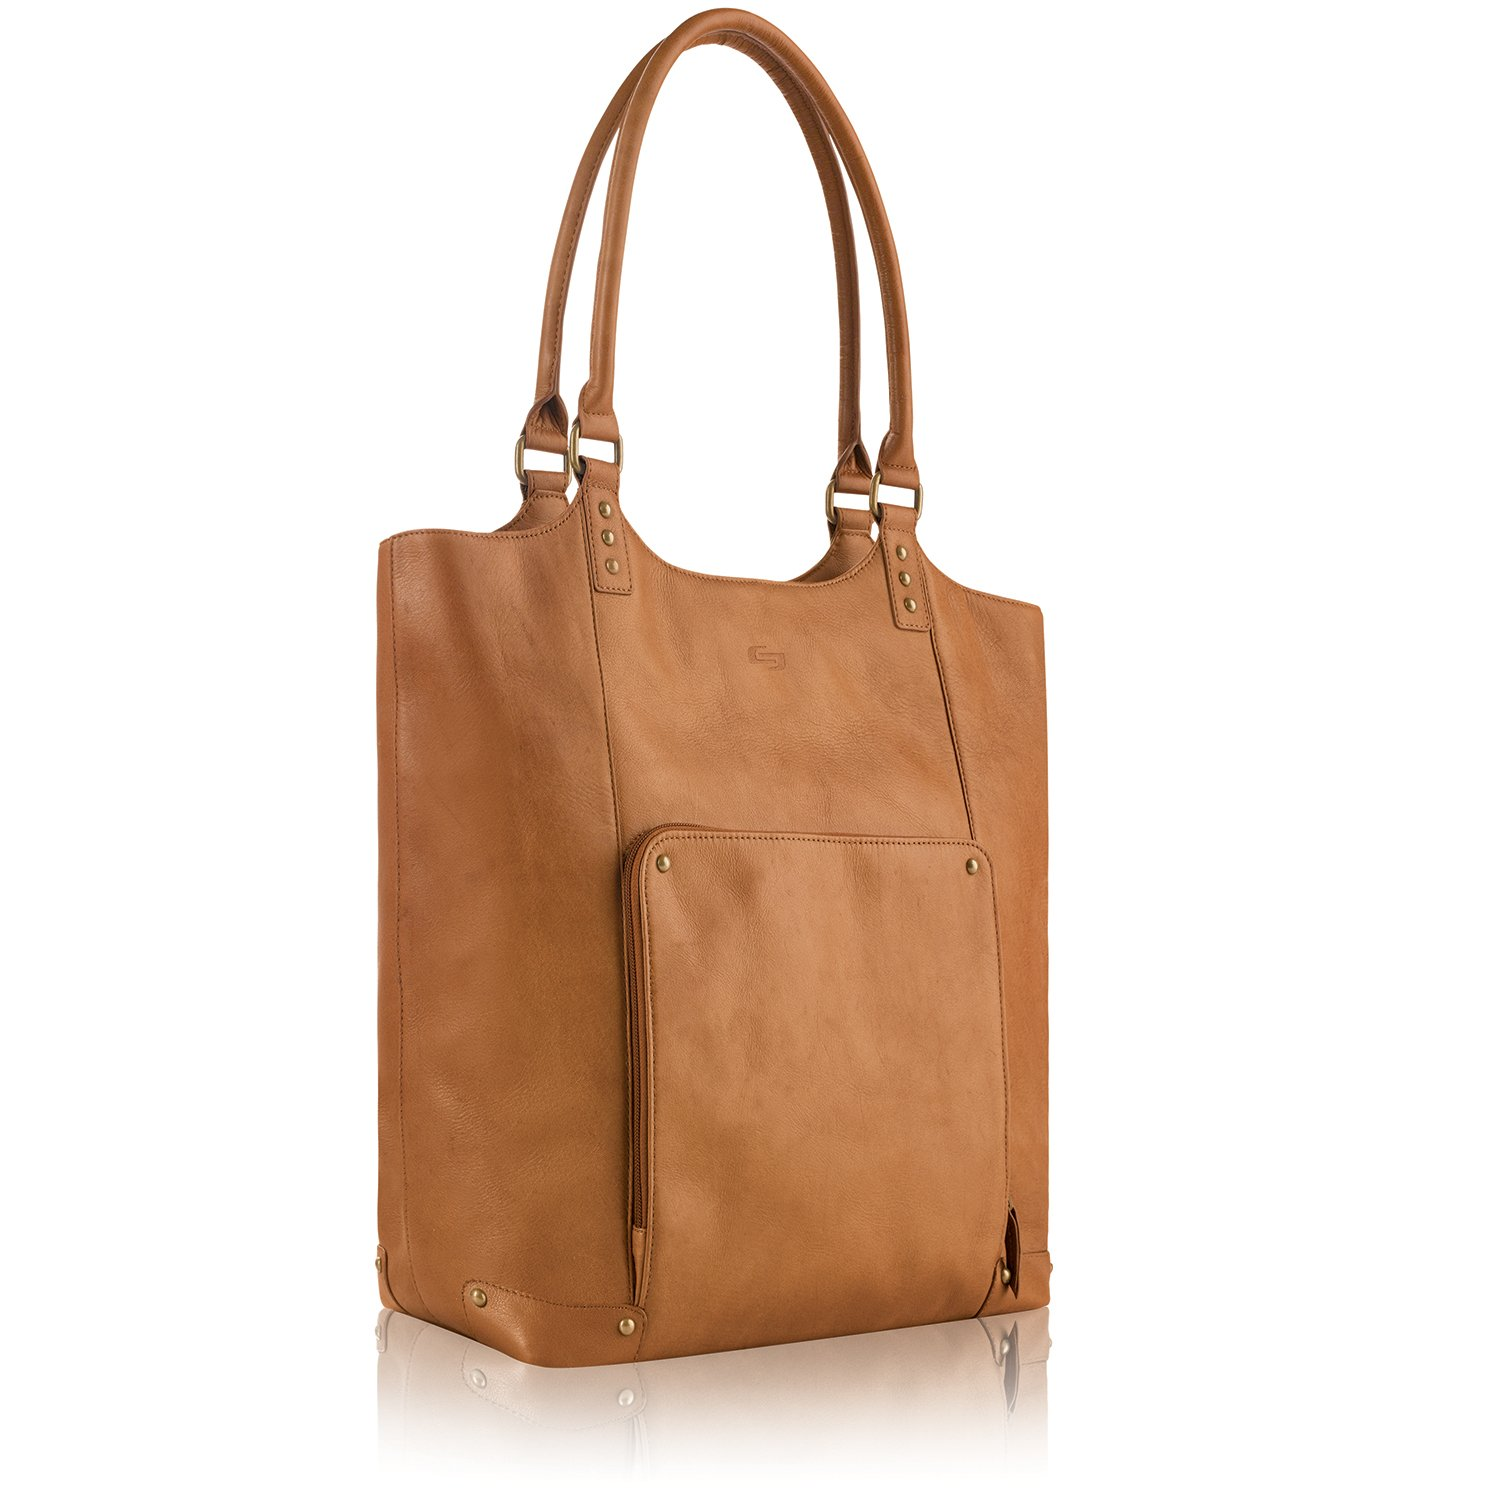 Solo Vestry 15.6 Inch Laptop Bucket Tote, Tan by SOLO (Image #2)